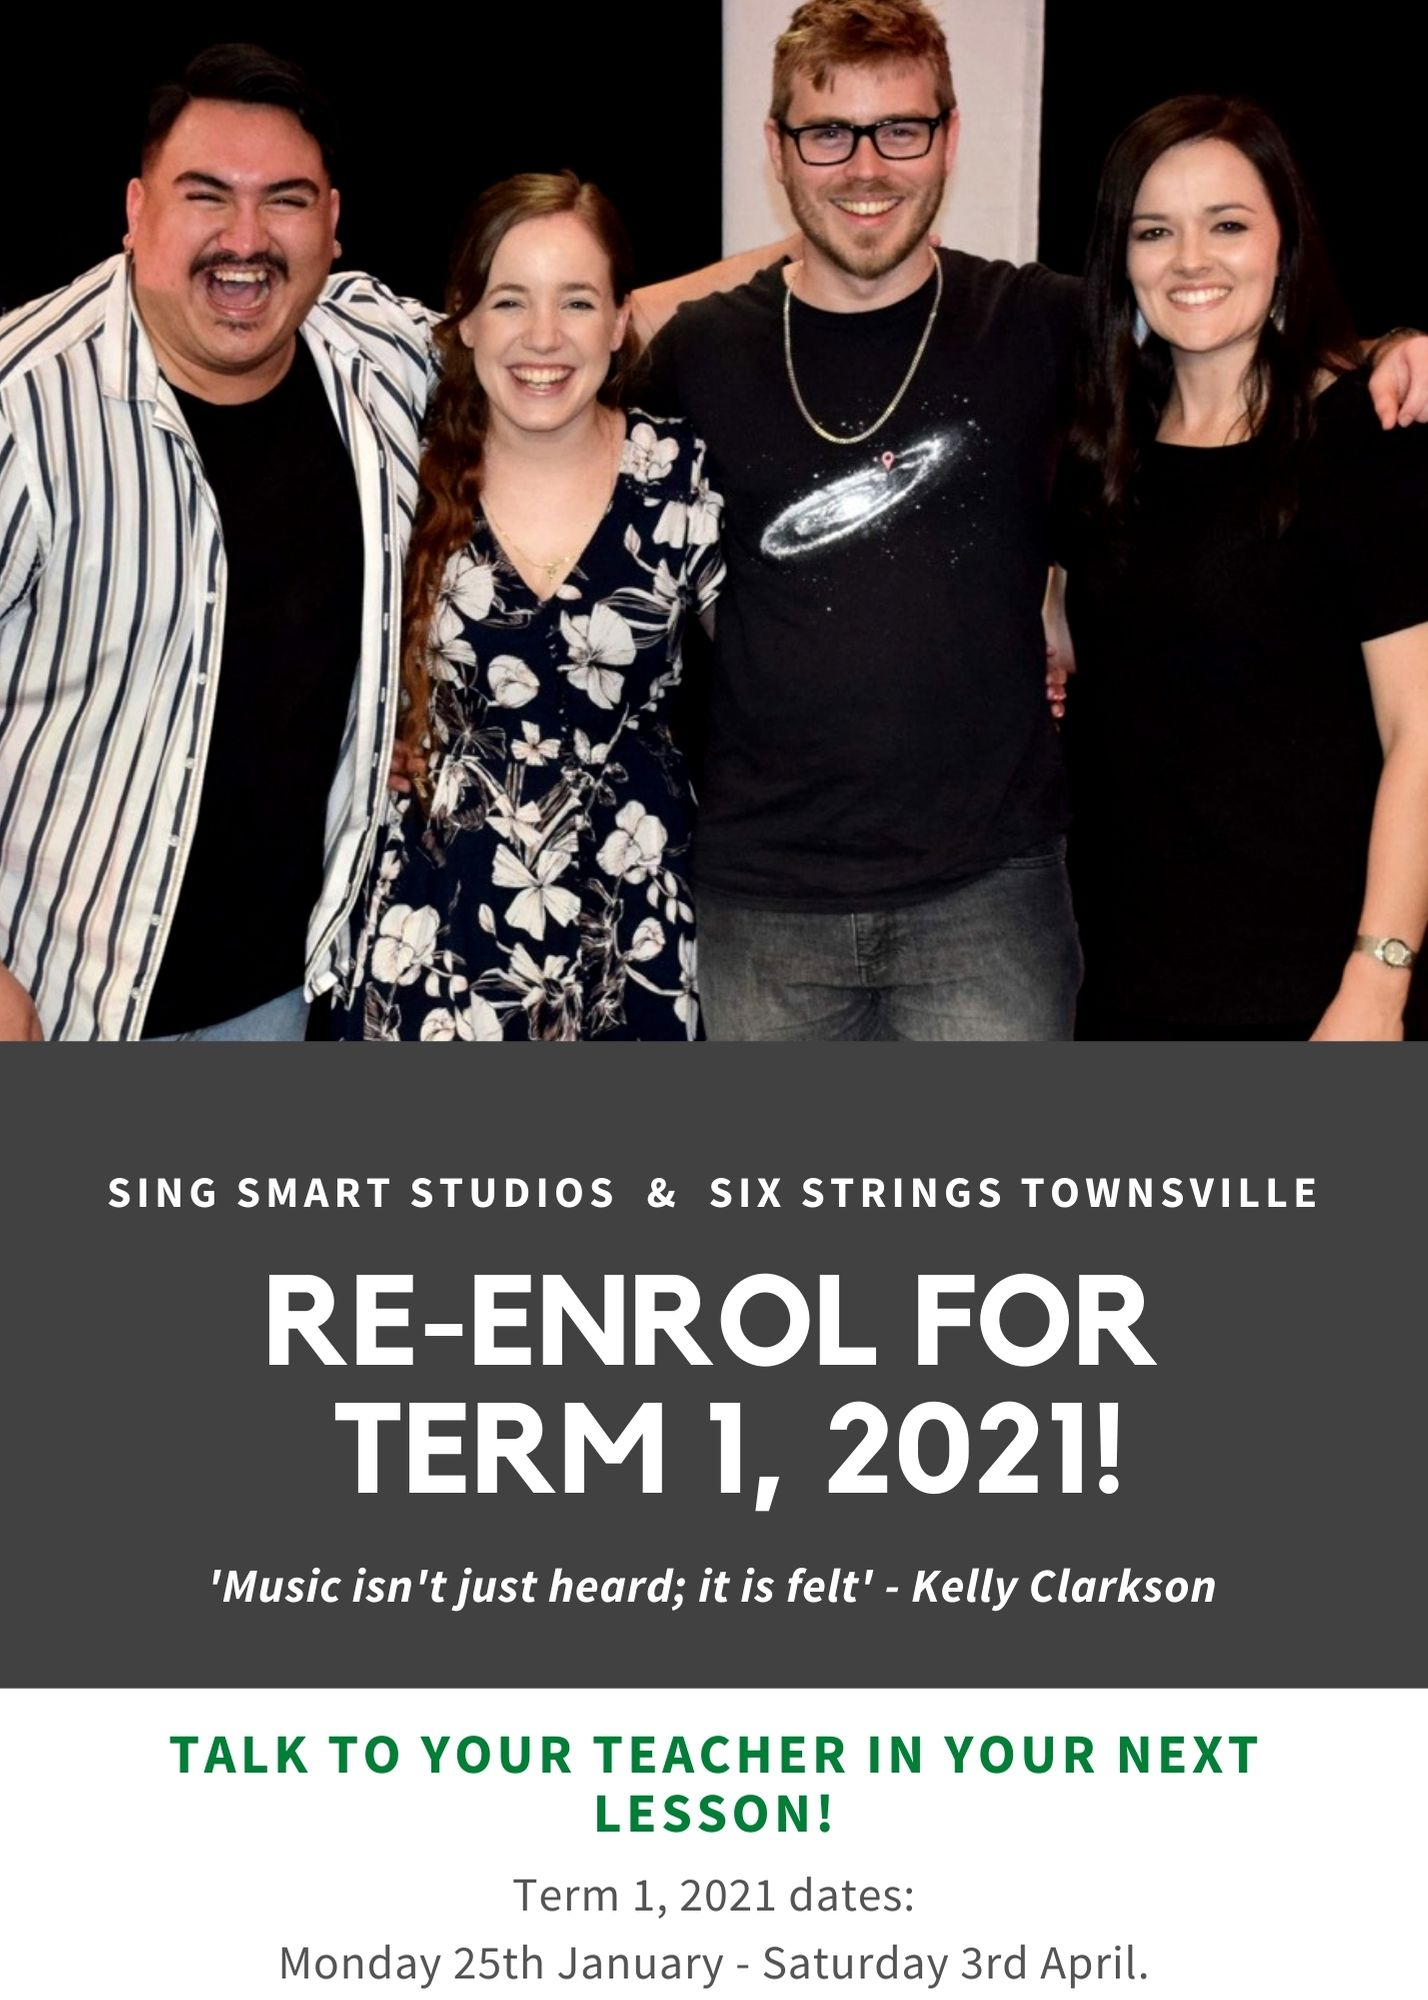 Re-enrol now for Term 1, 2021!